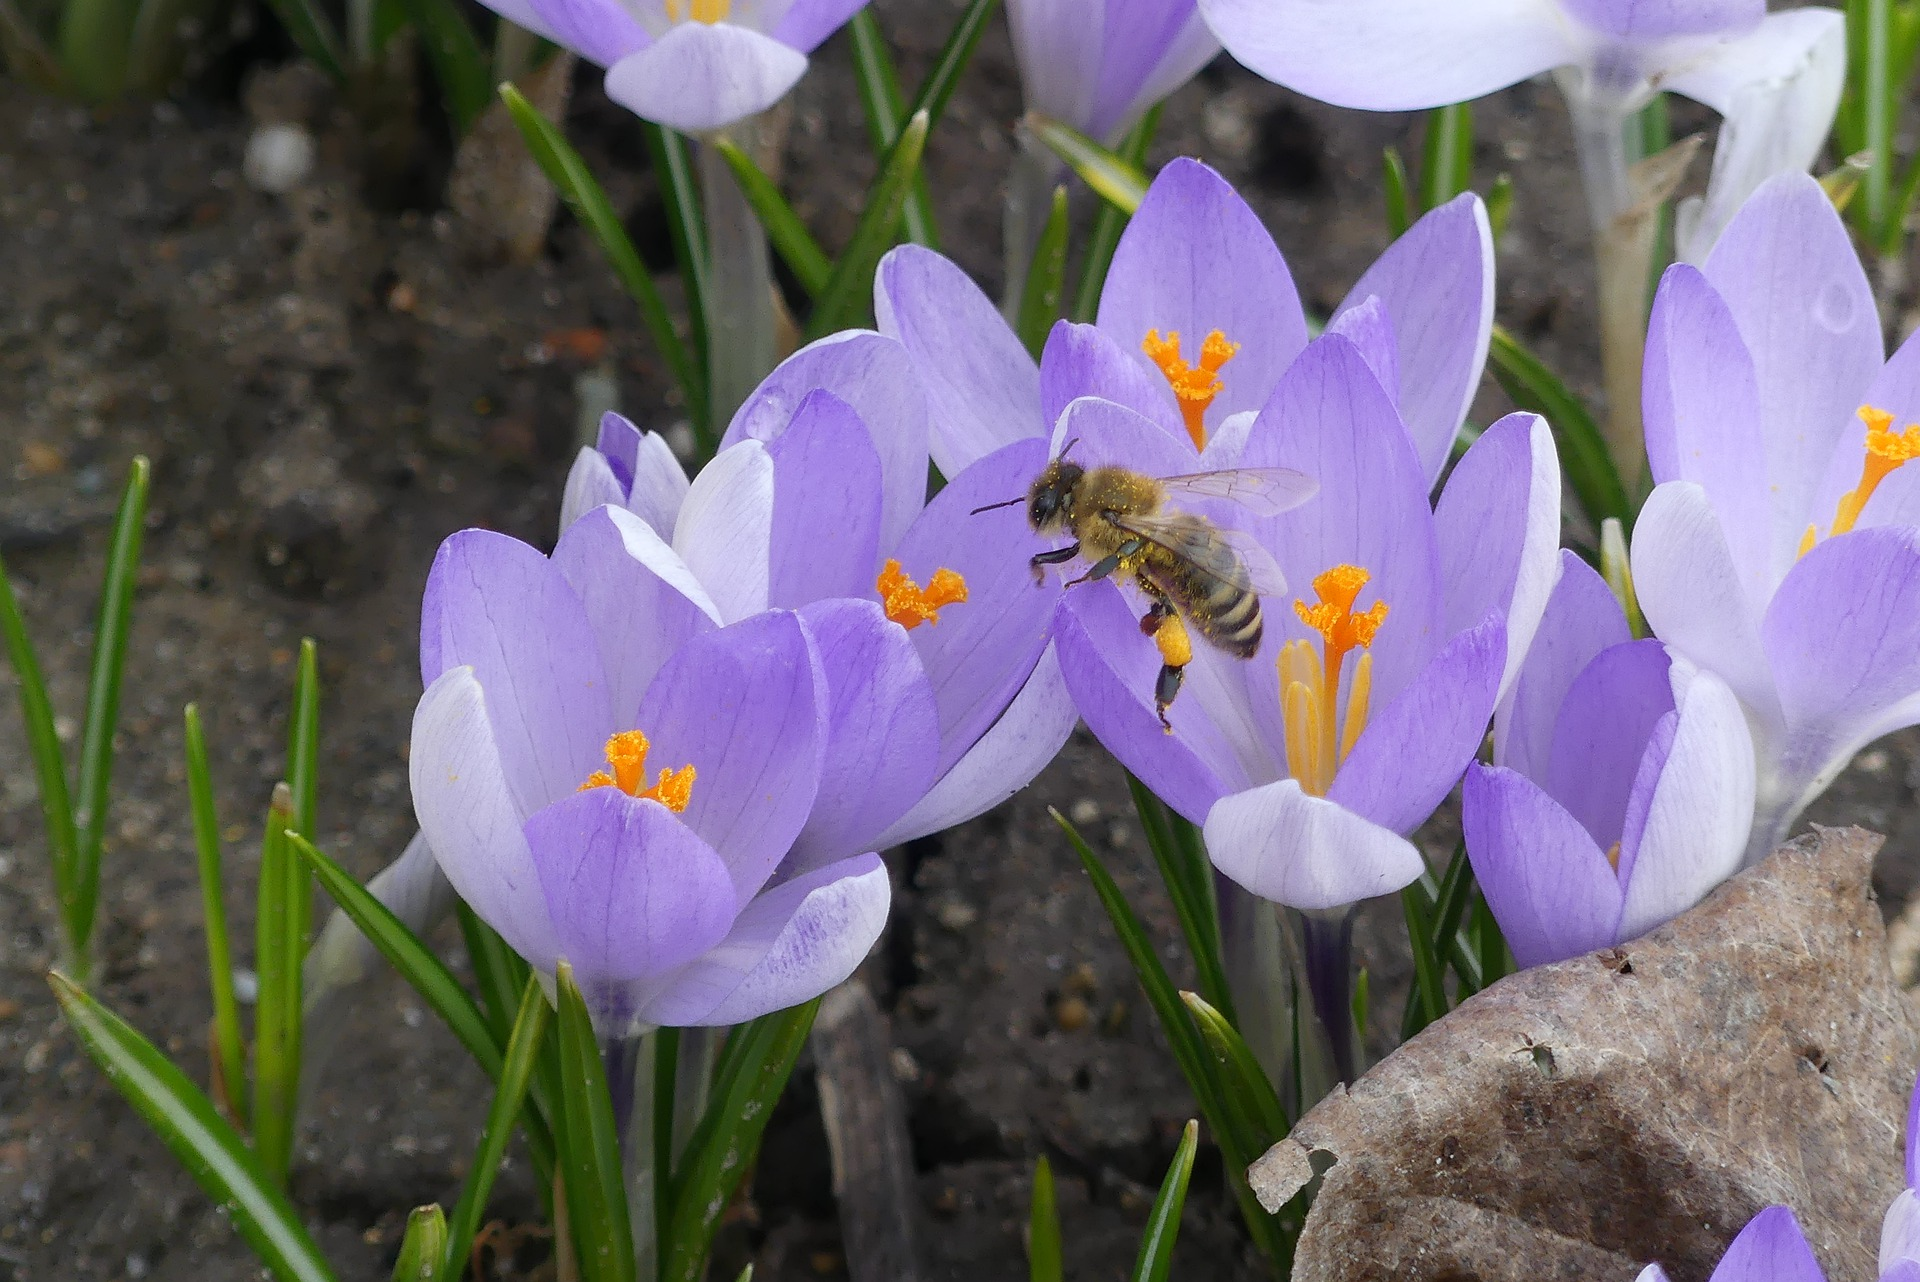 -- sun or part shade -- purples, white, yellow -- some varieties fragrant